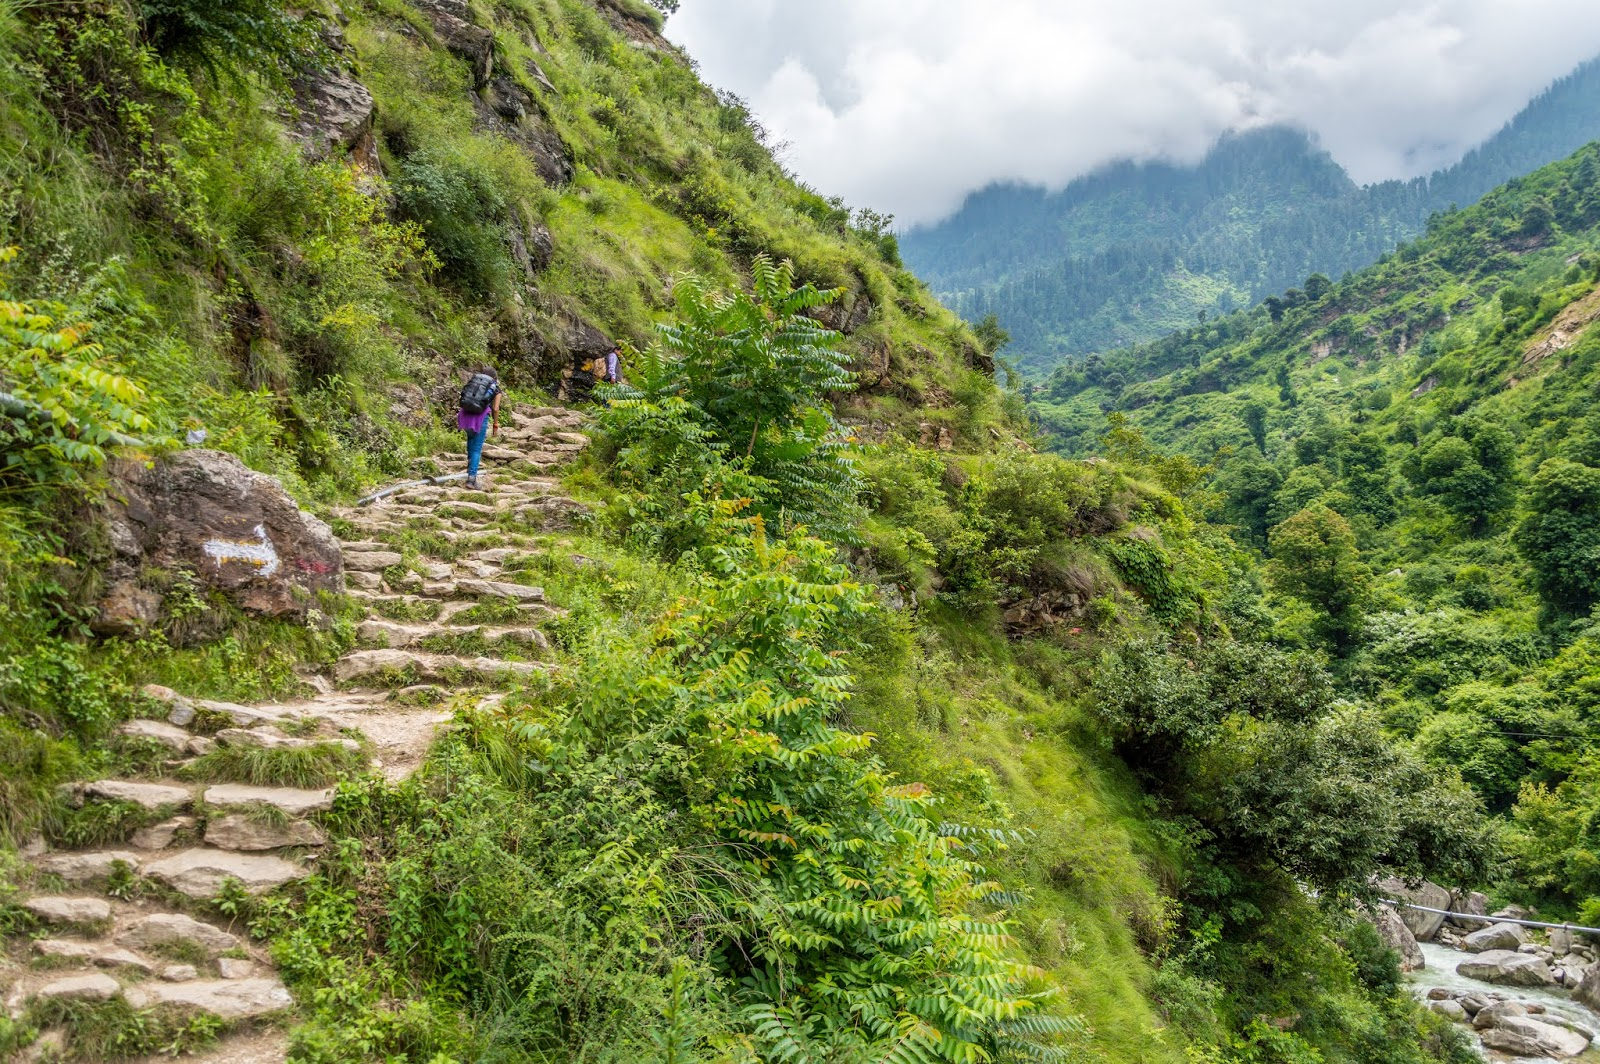 Paved path to Srikhand Mahadev Trek, which was easier